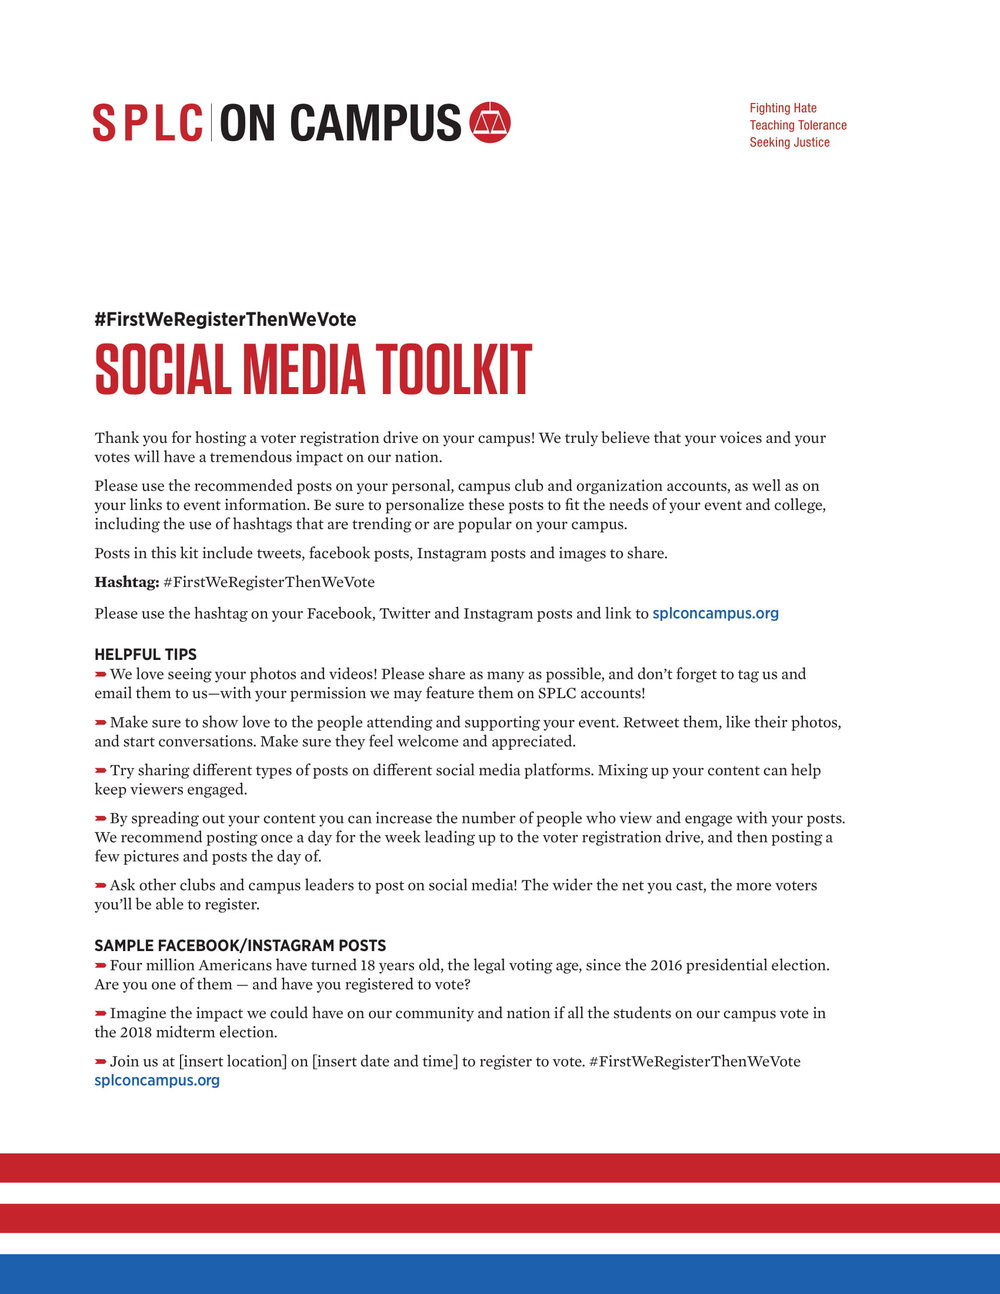 SOC_Vote Box_Social Media Tool Kit Guide-1.jpg